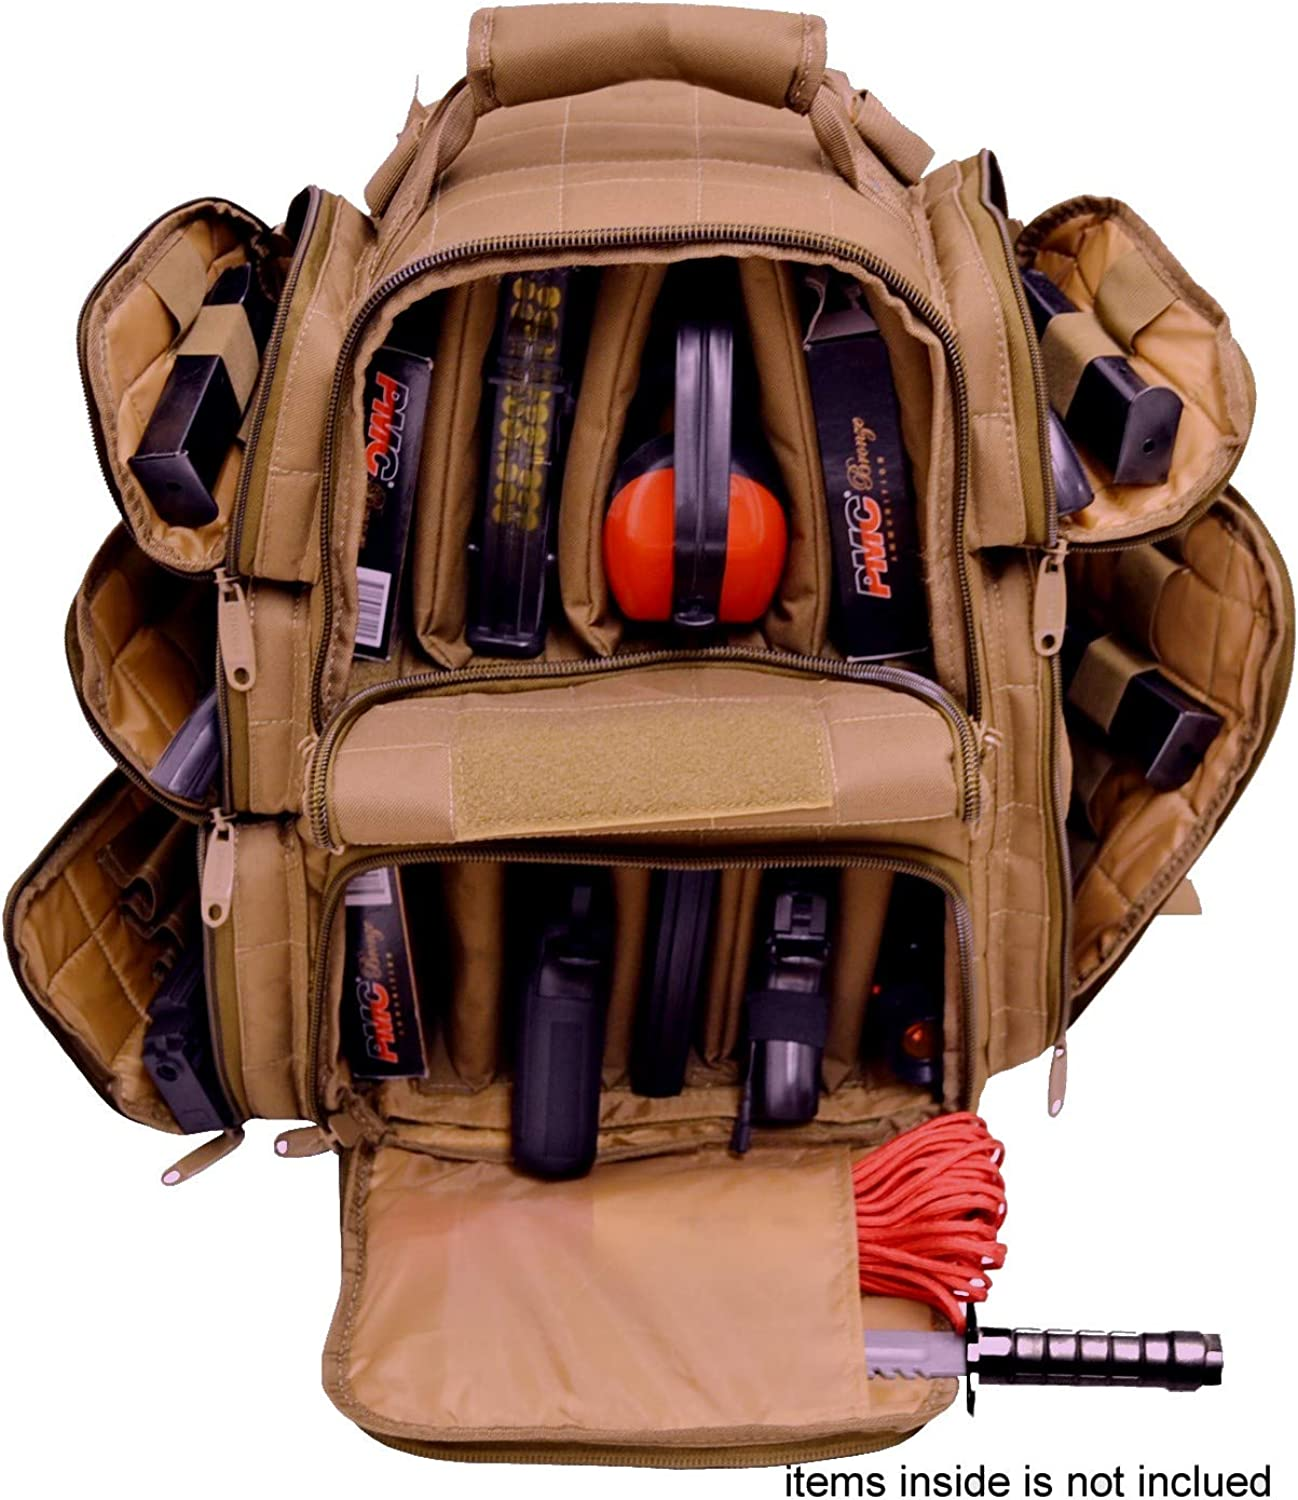 EXPLORER Backpack + Range Bag with Large Padded Deluxe Tactical Divider and 9 Clip Mag Holder - Rangemaster Gear Bag Explorer (Brown Color)